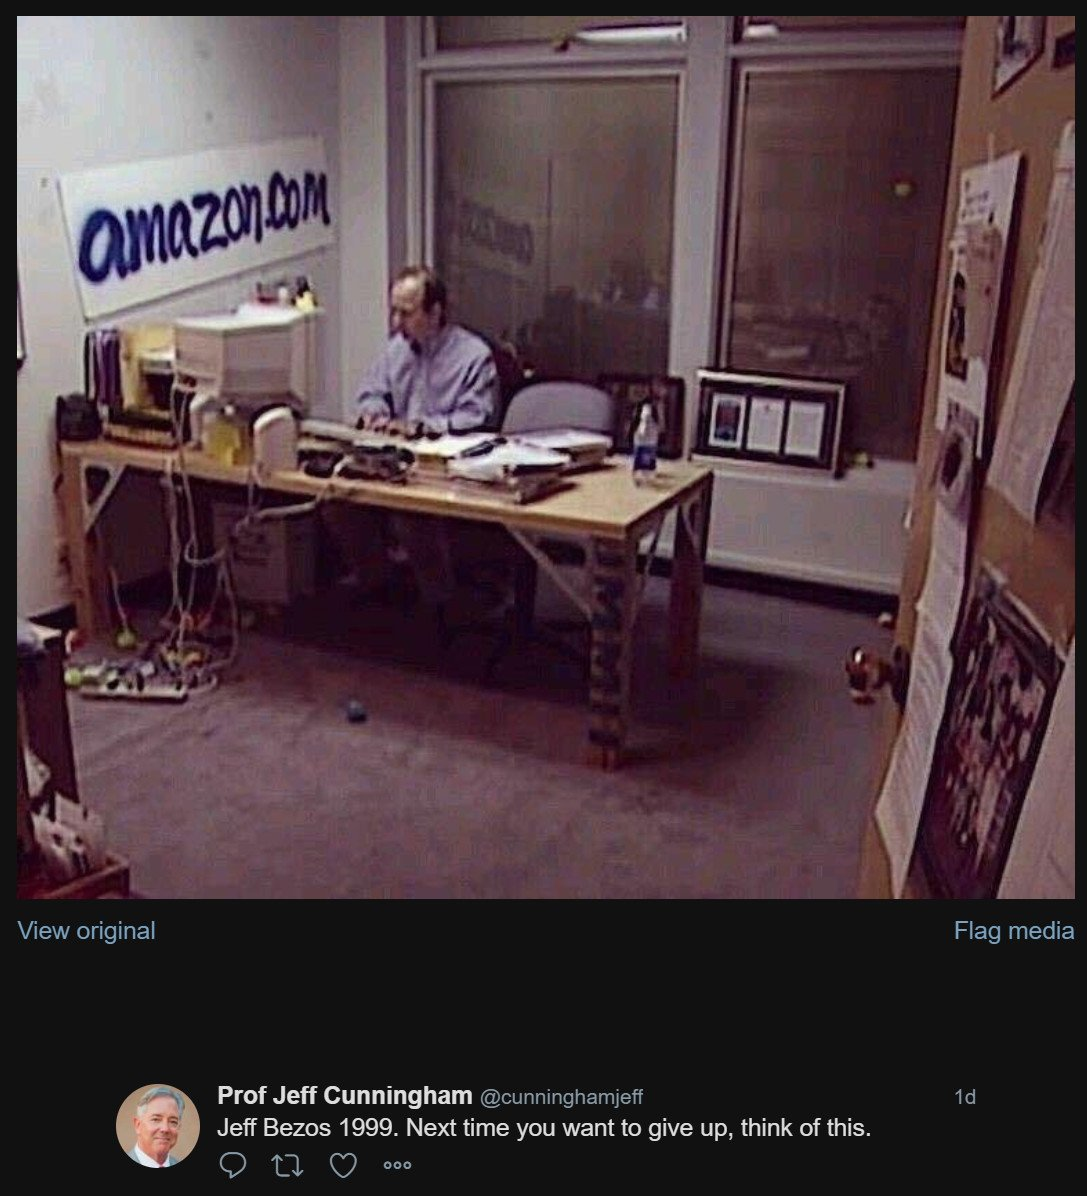 Bill Gross On Twitter When This Picture Of Jeff Bezos Was Taken In